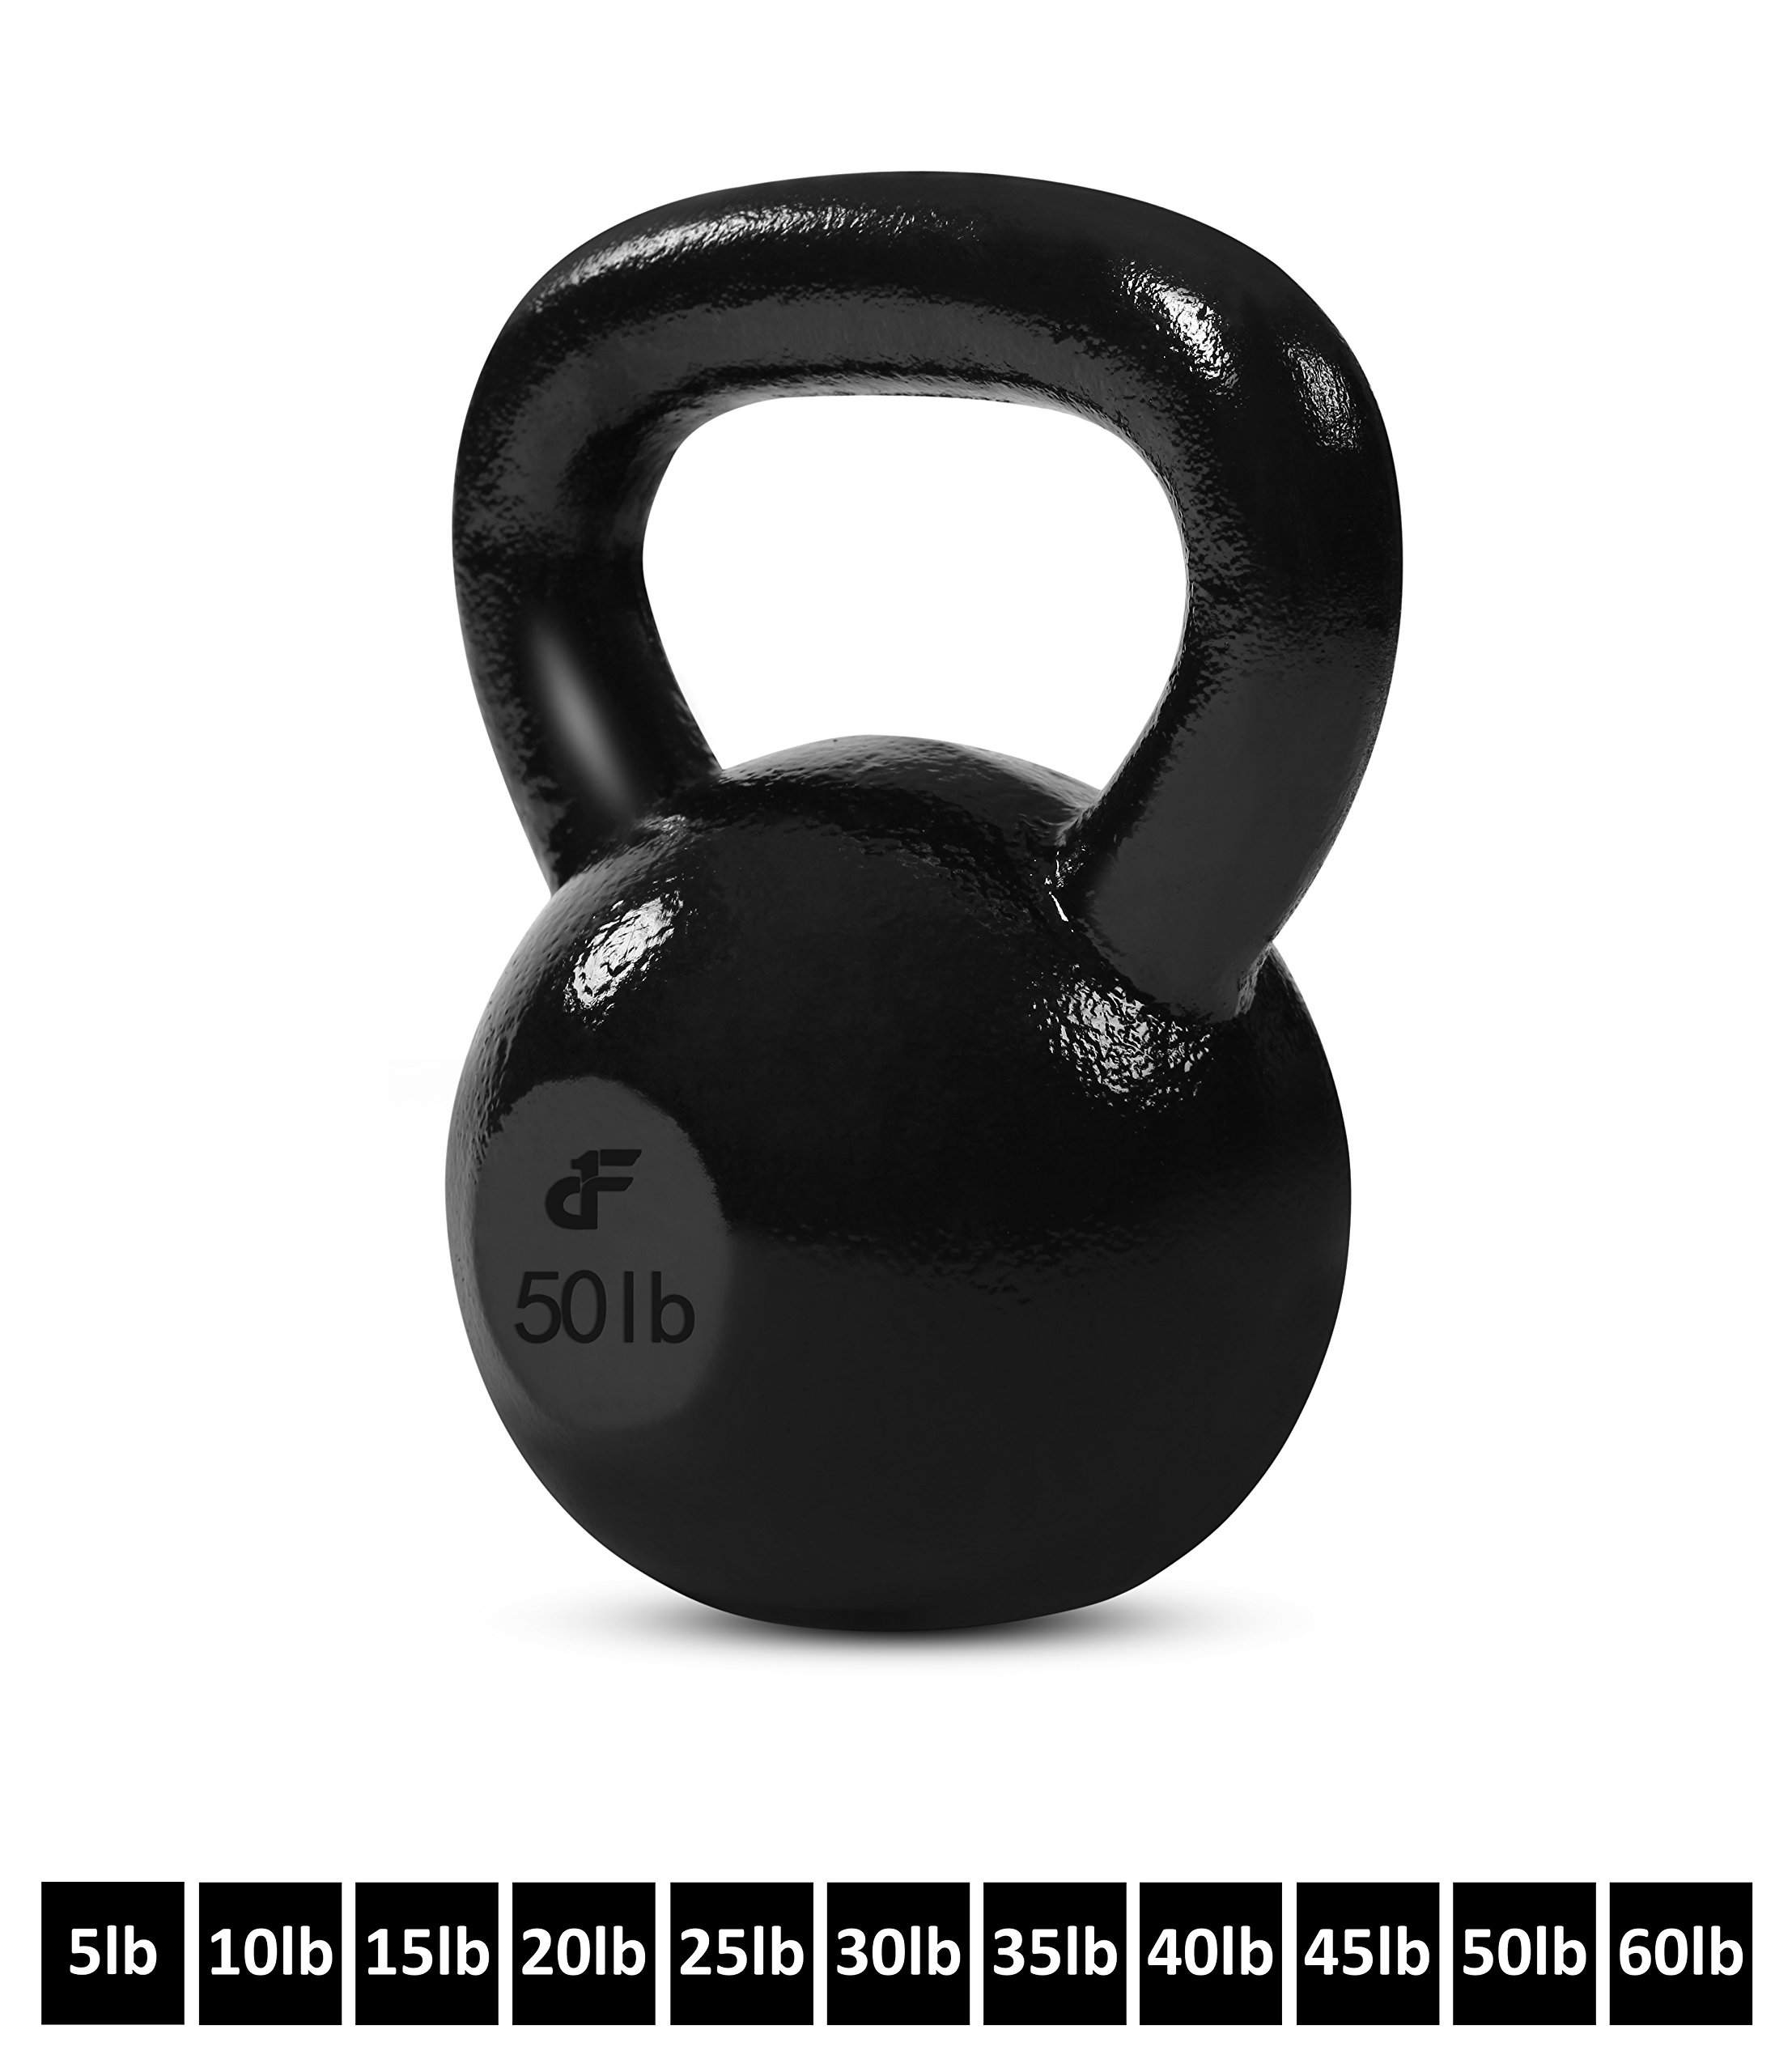 Kettlebell Weights Cast Iron by Day 1 Fitness – 50 Pounds - Ballistic Exercise, Core Strength, Functional Fitness, and Weight Training Set - Free Weight, Equipment, Accessories